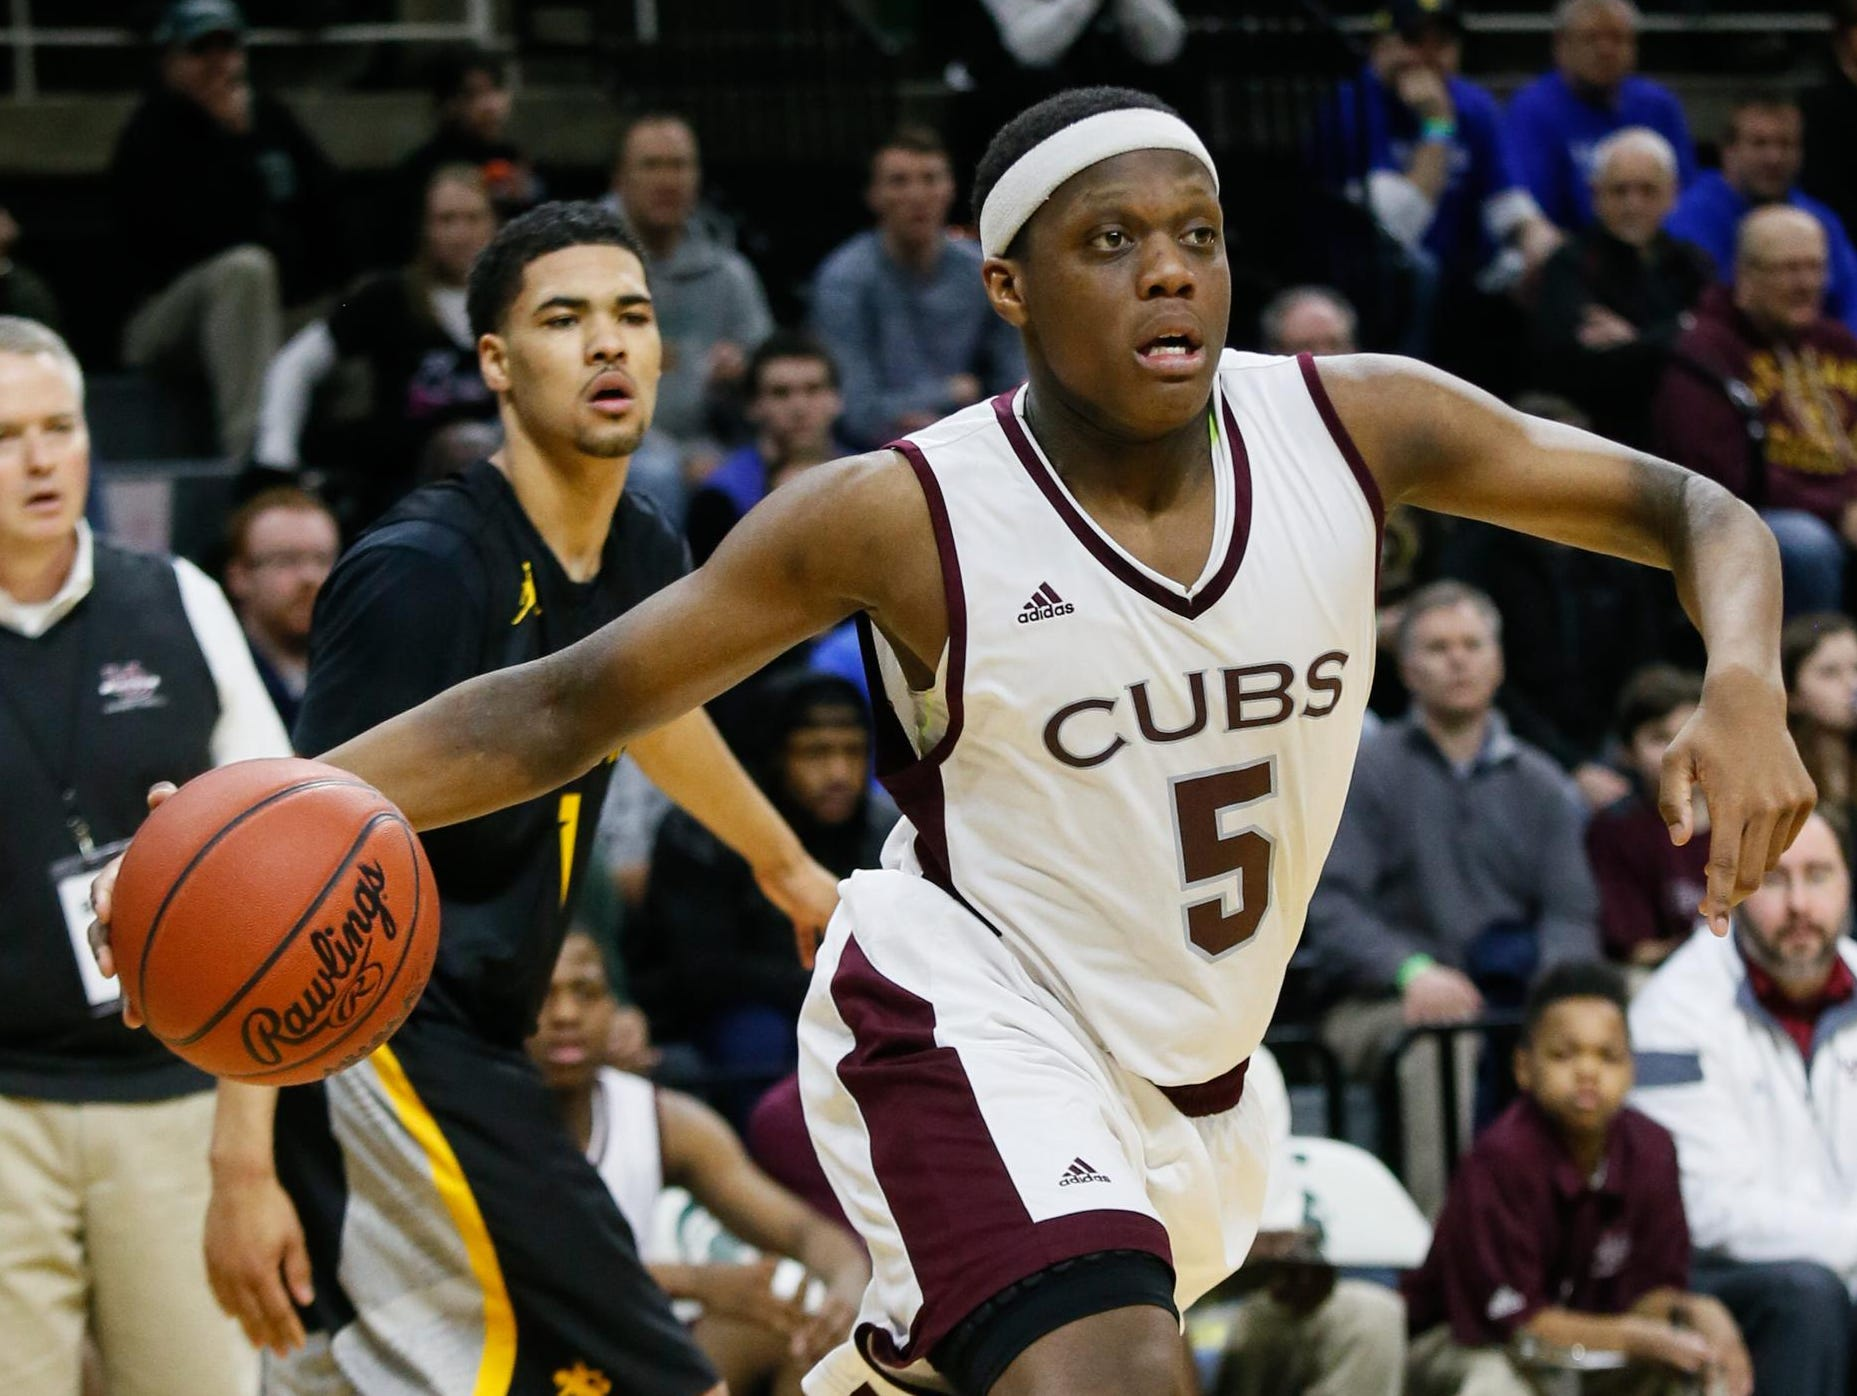 U-D Jesuit's Cassius Winston scores 31 points against North Farmington to win the MHSAA boys basketball Class A championship 69-49 at the Breslin Center on March 26.